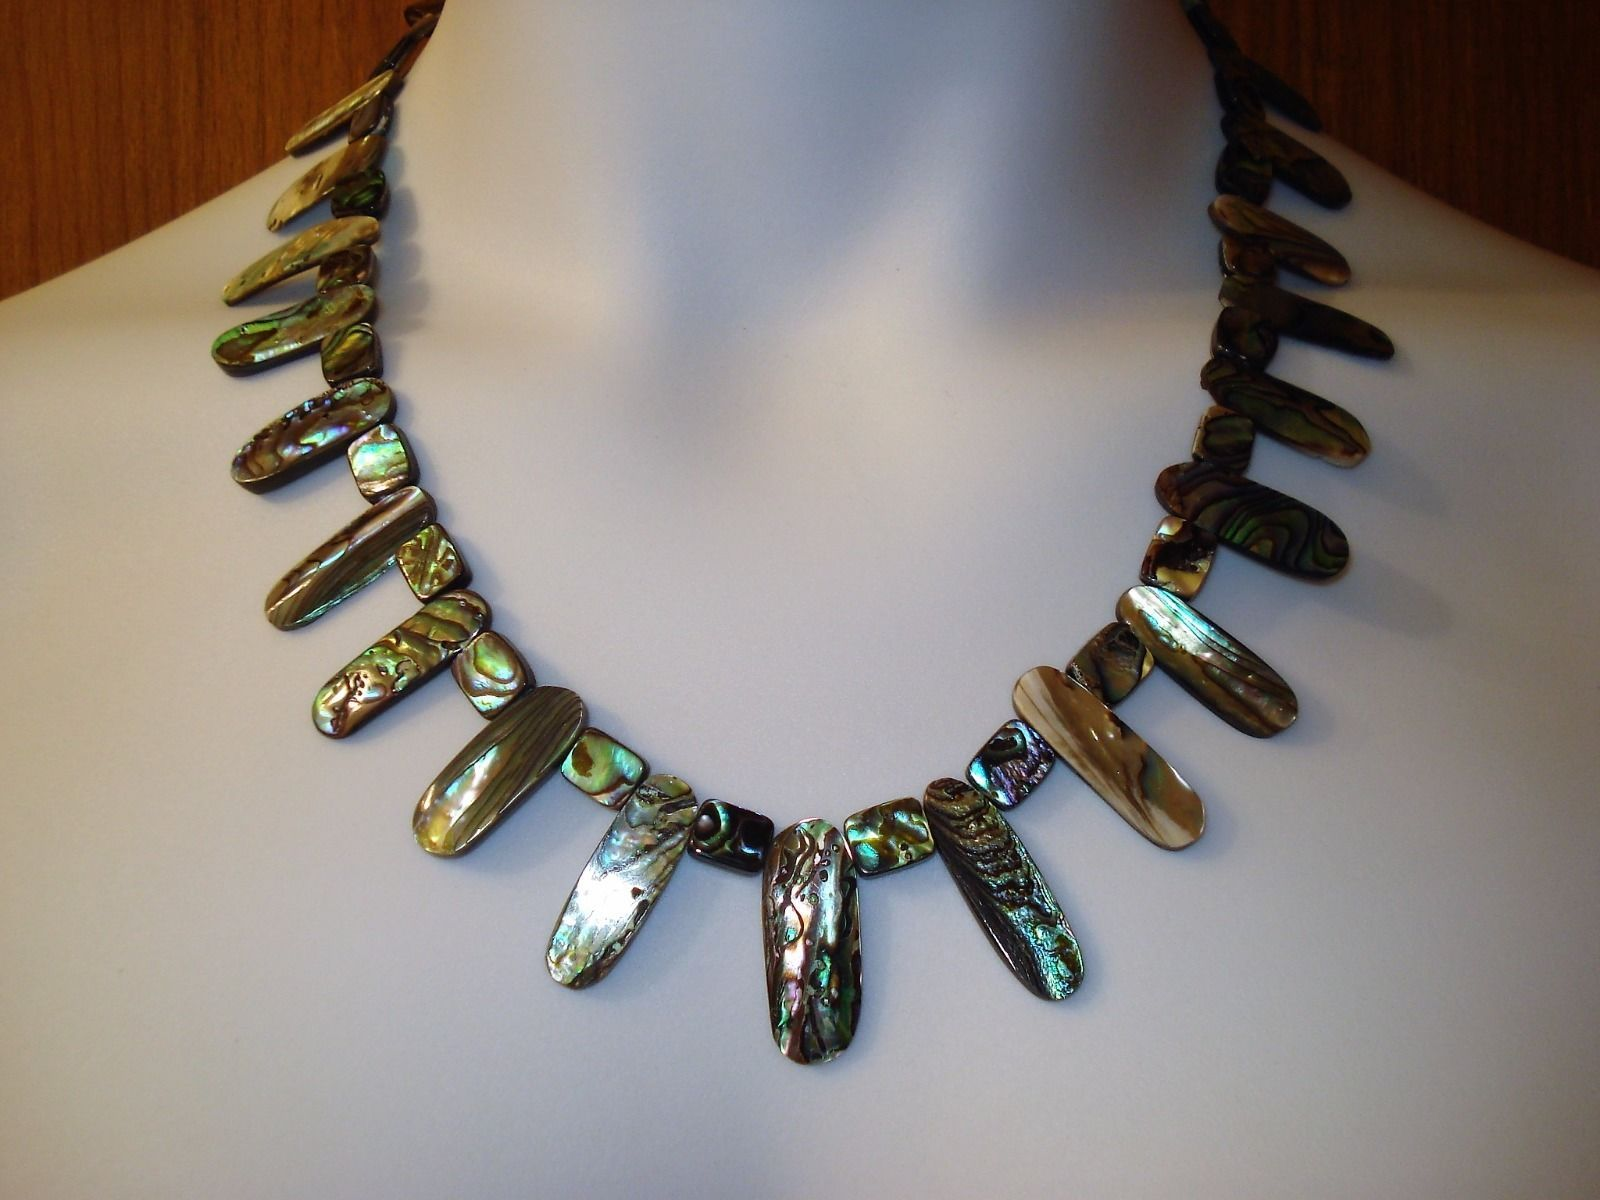 "20 1/2"" Abalone Necklace, 7 1/2"" Bracelet & 1 3/8"" Drop Earrings, all with .925"